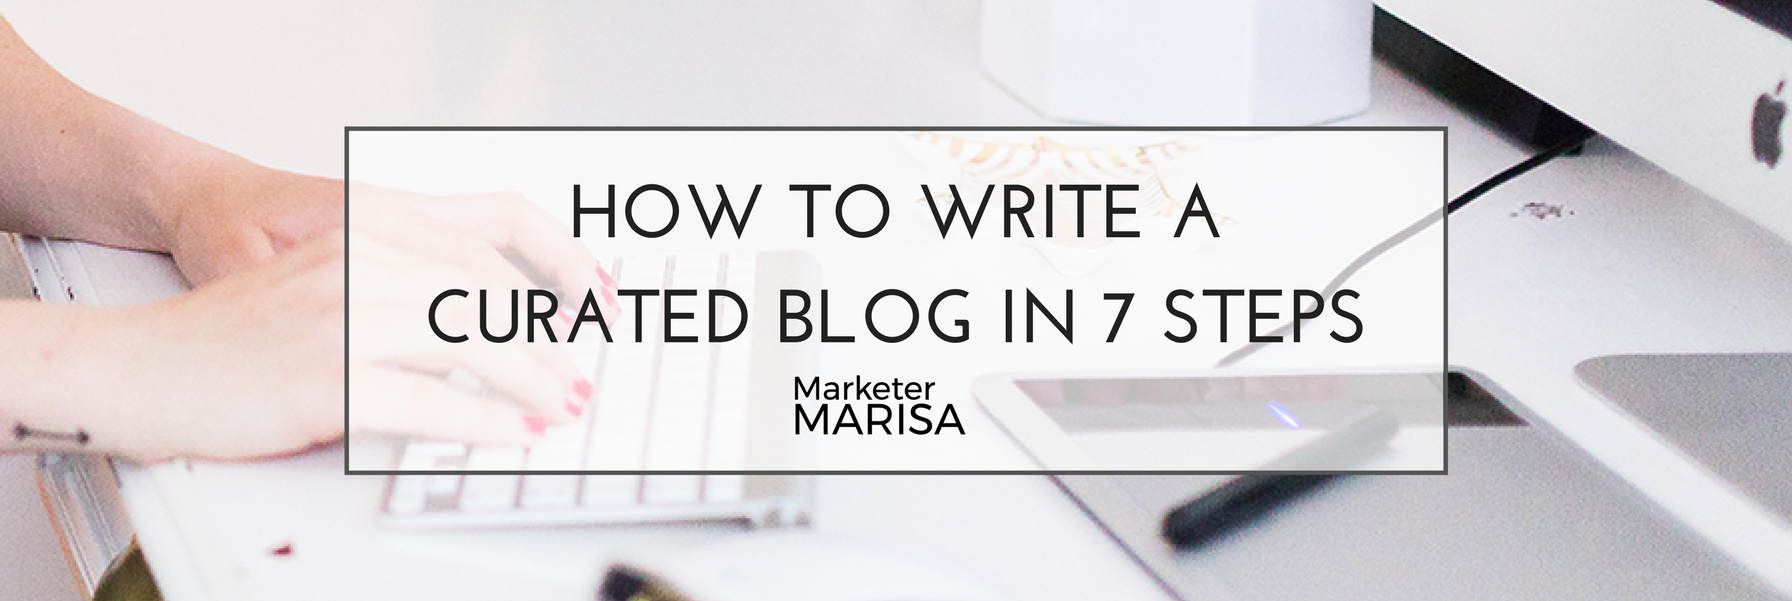 How To Write a Curated Blog in 7 Steps.png